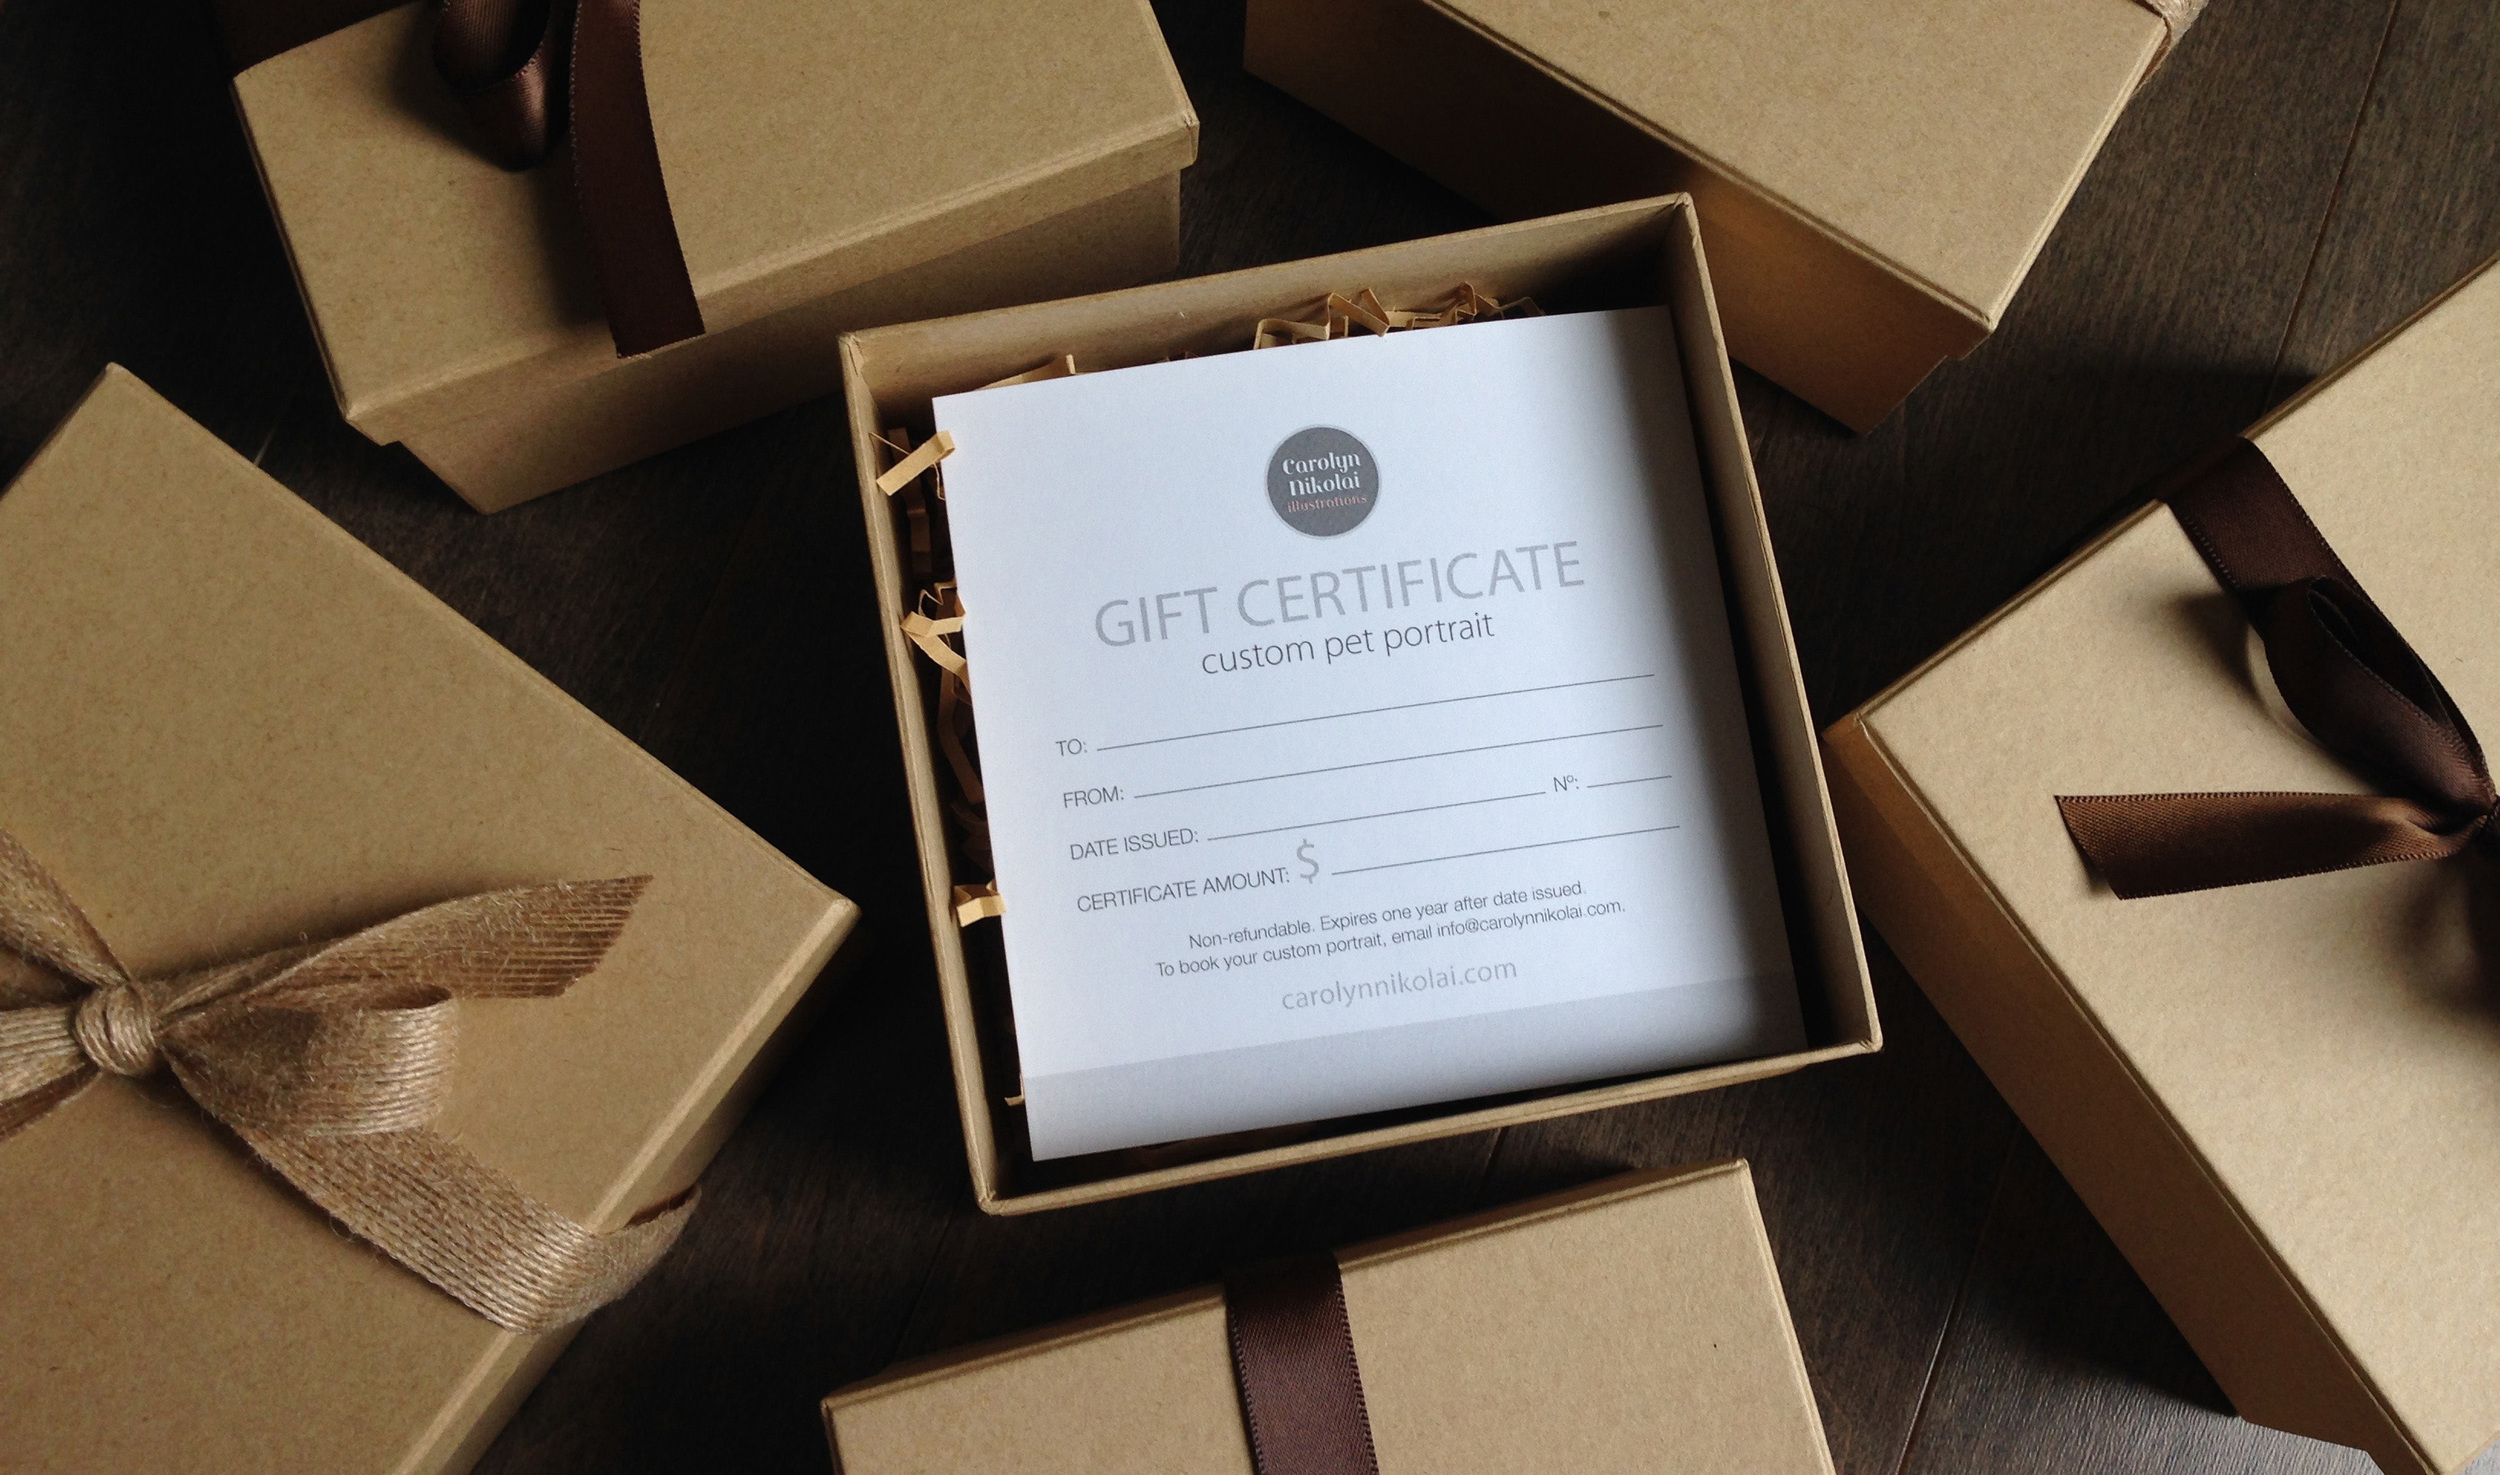 Gift certificate boxes.